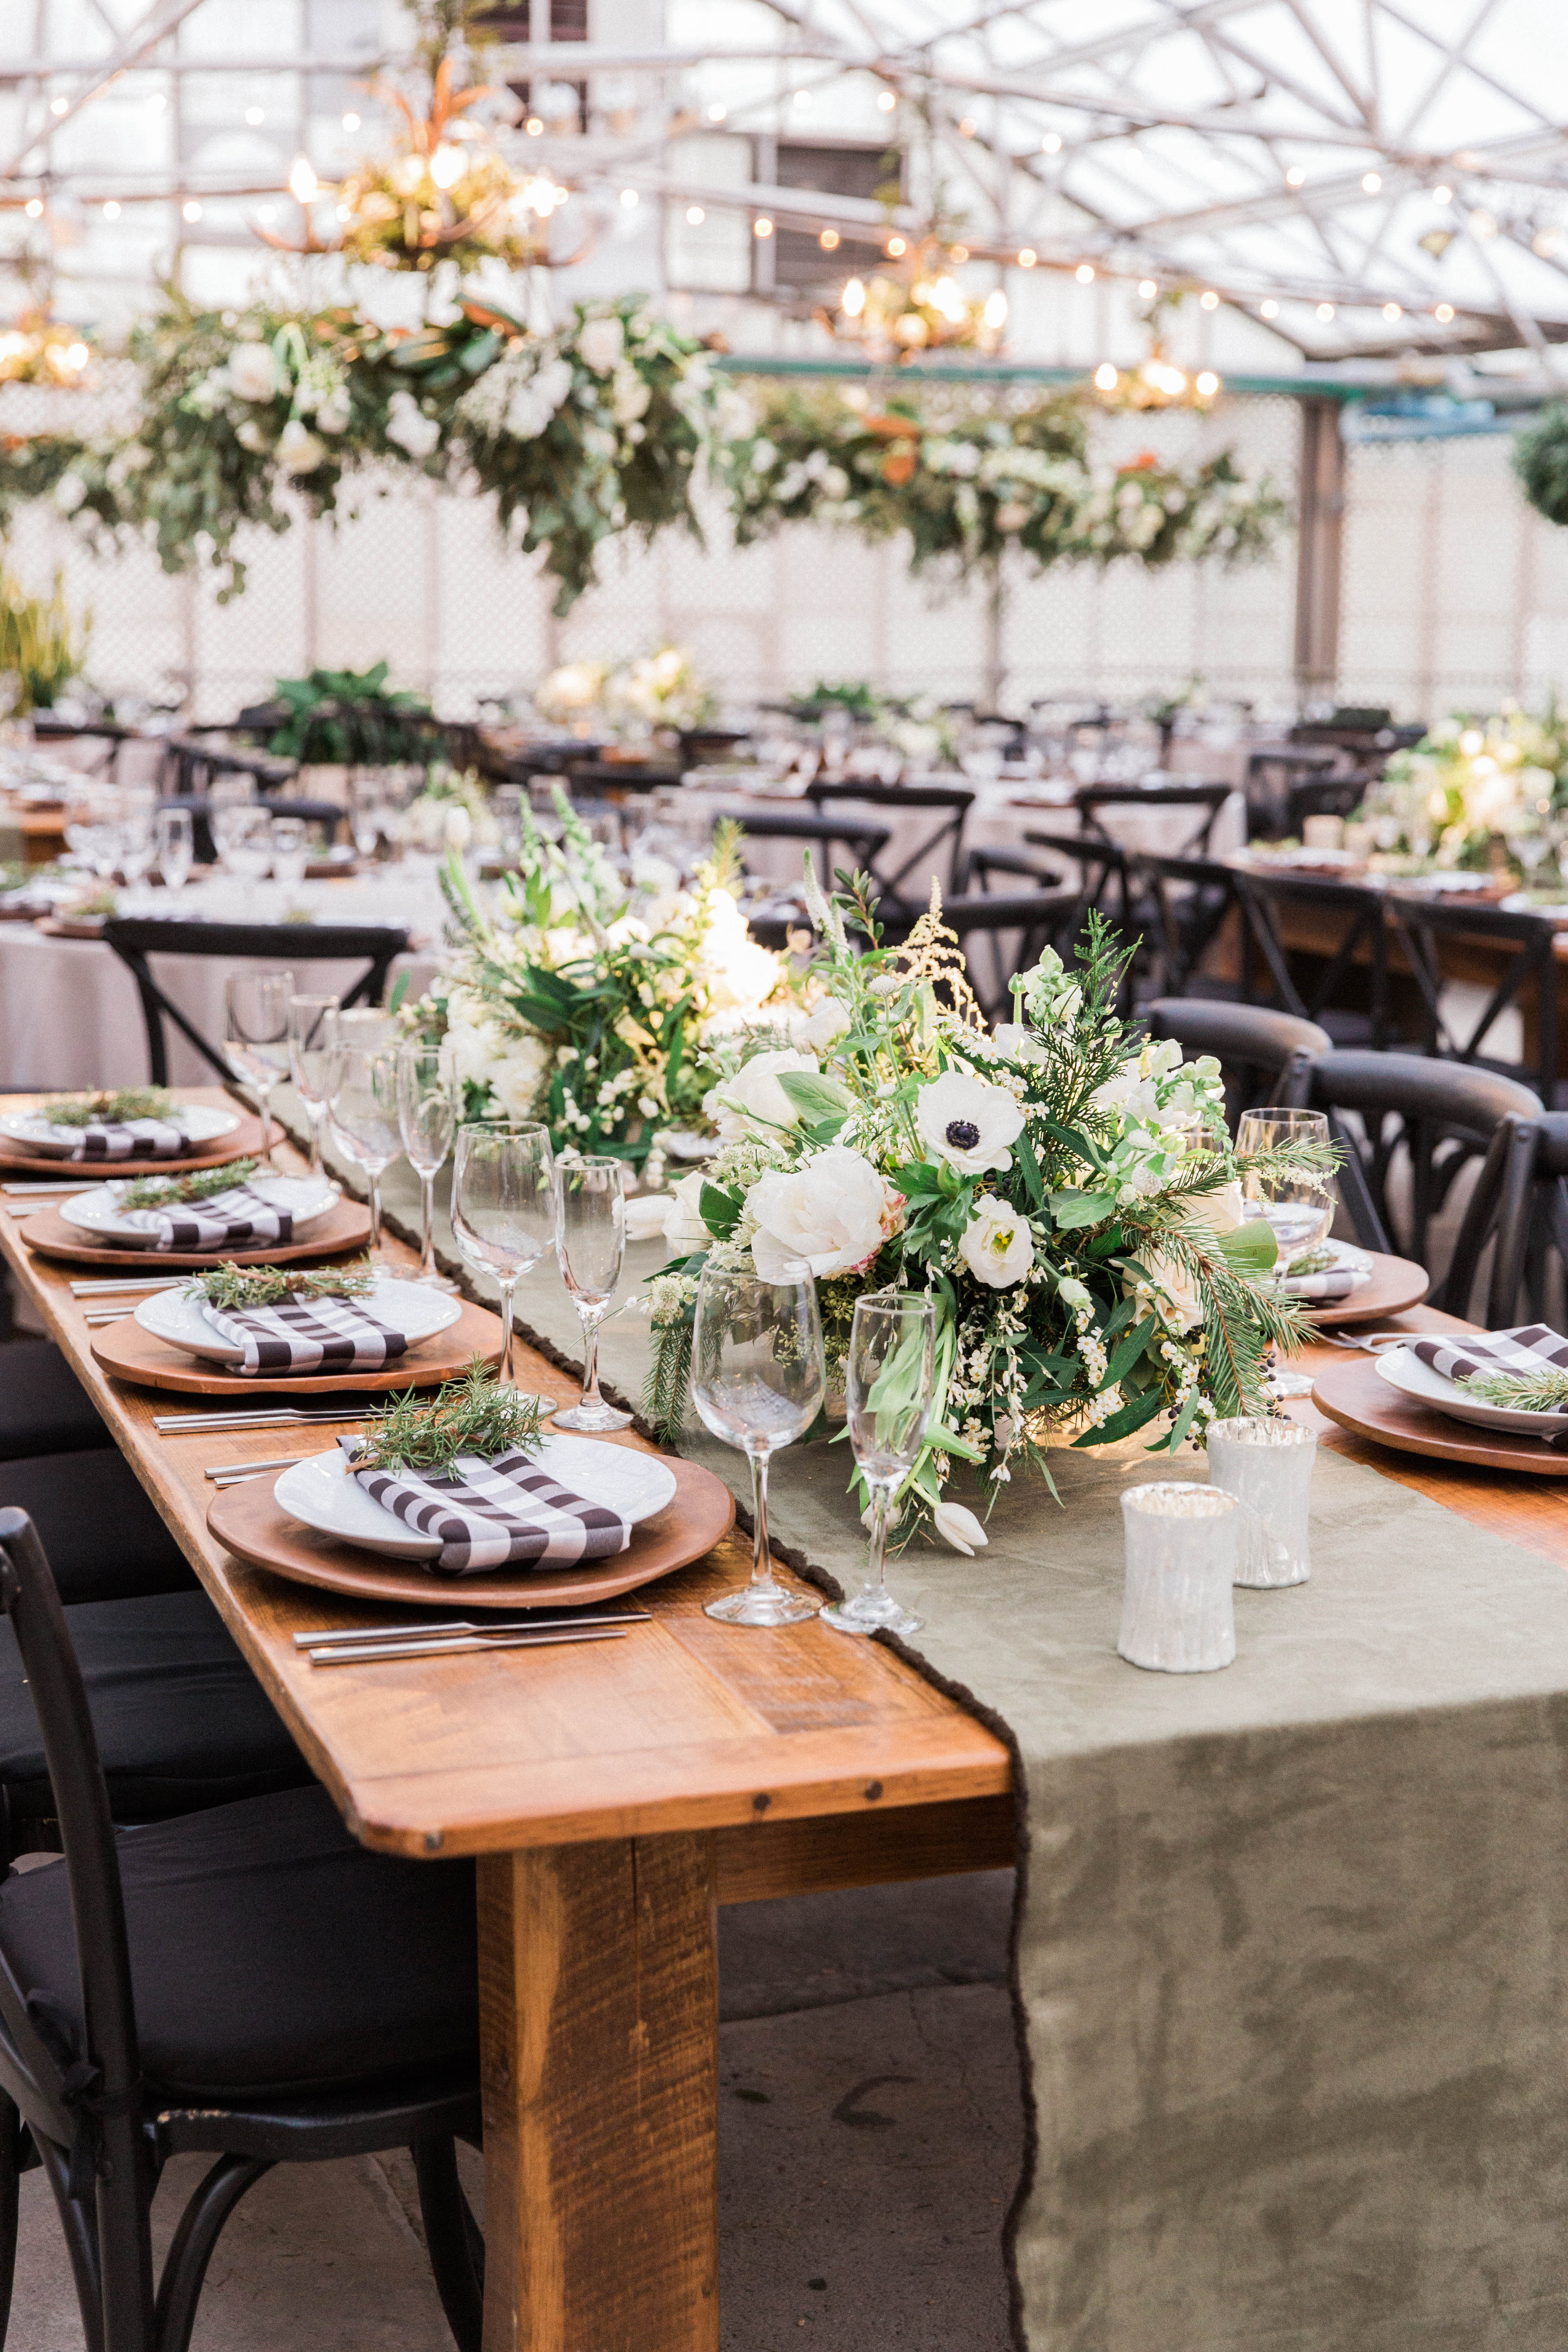 reception tables place setting with white floral arrangements